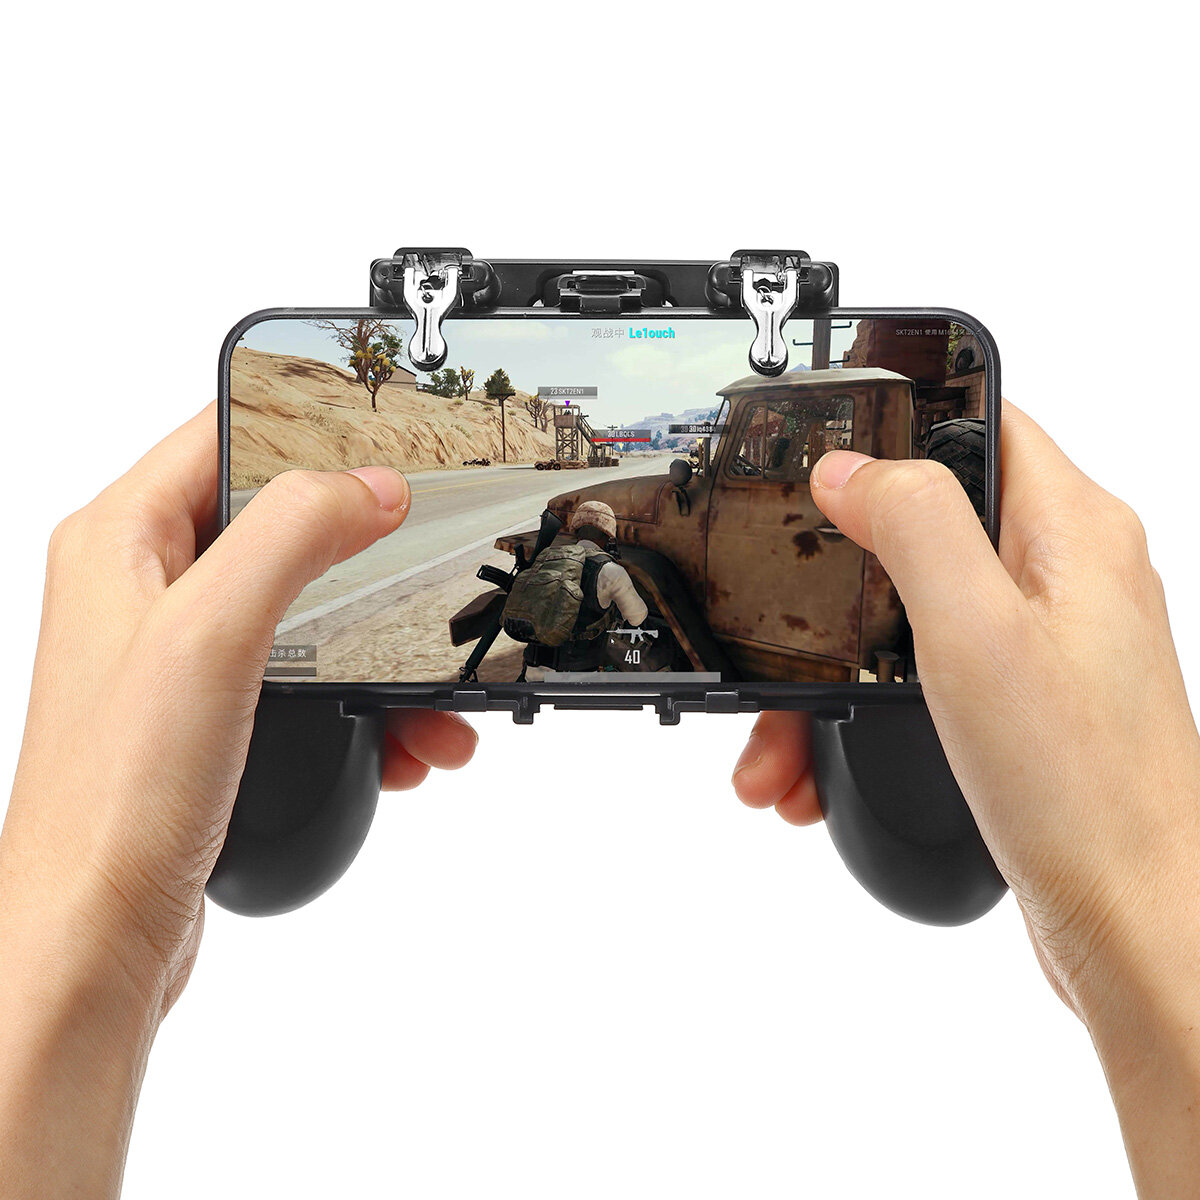 H1 Gamepad Game Controller Fire Trigger Shooter Button for PUBG Mobile Game  for Phone